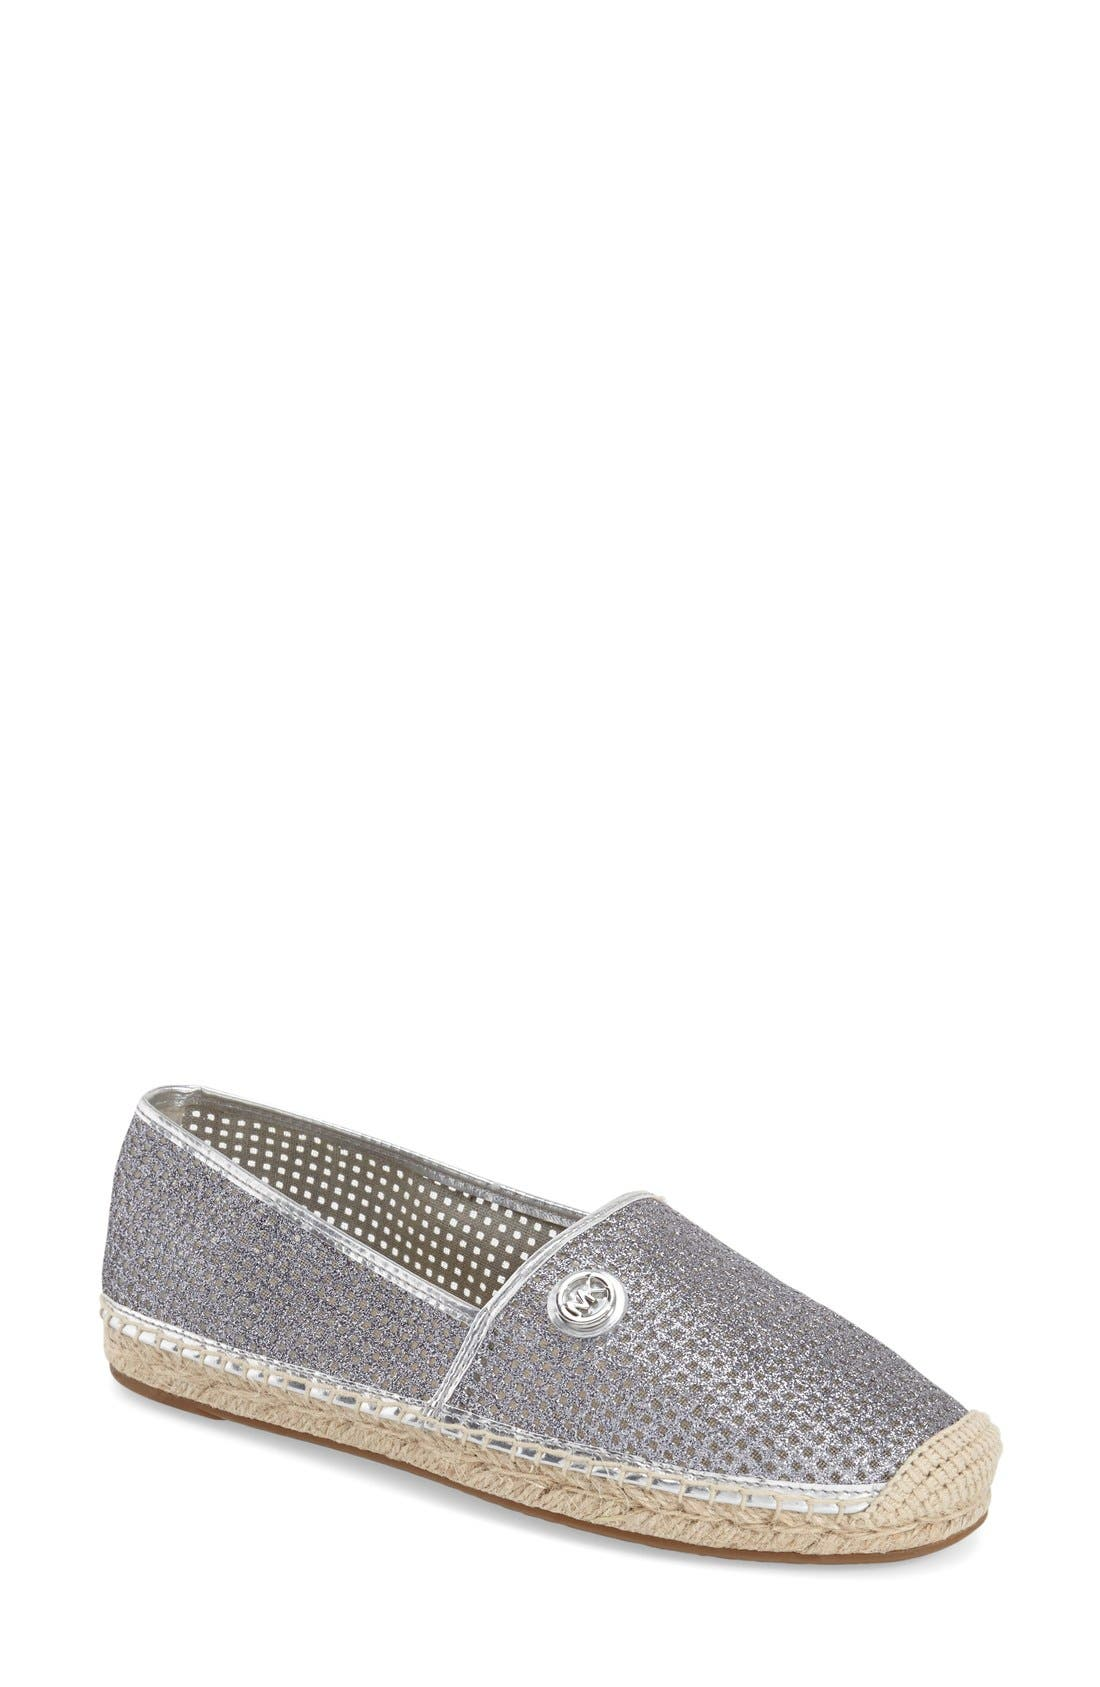 Alternate Image 1 Selected - MICHAEL Michael Kors 'Kendrick' Slip-On Espadrille Flat (Women)